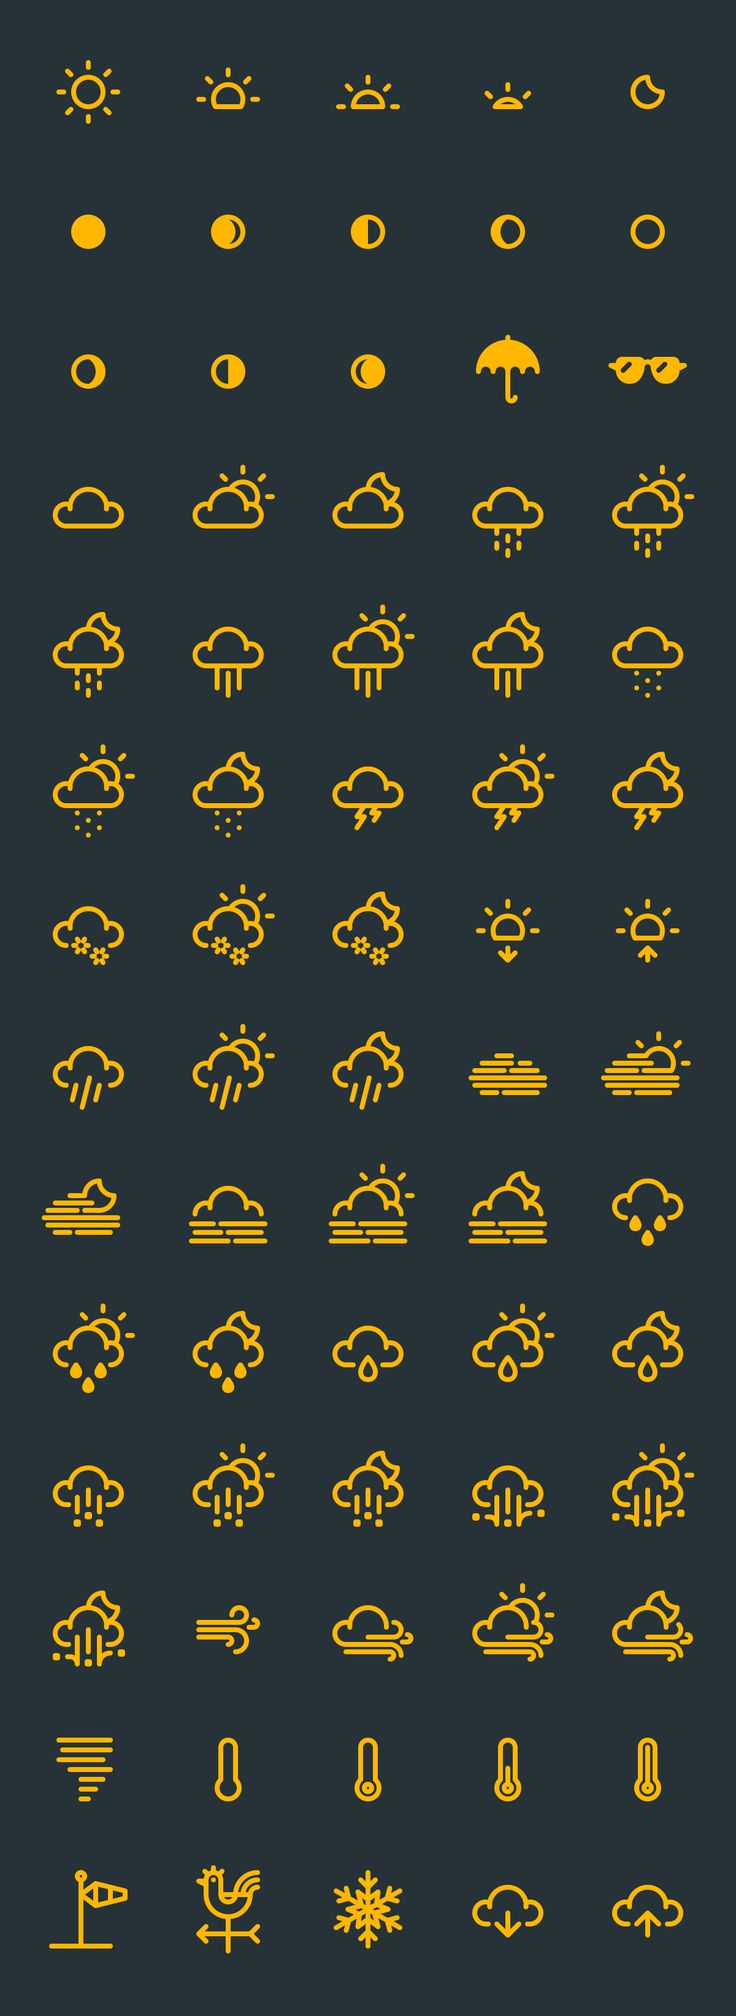 rns-weather-featured. If you like UX, design, or design thinking, check out theu…